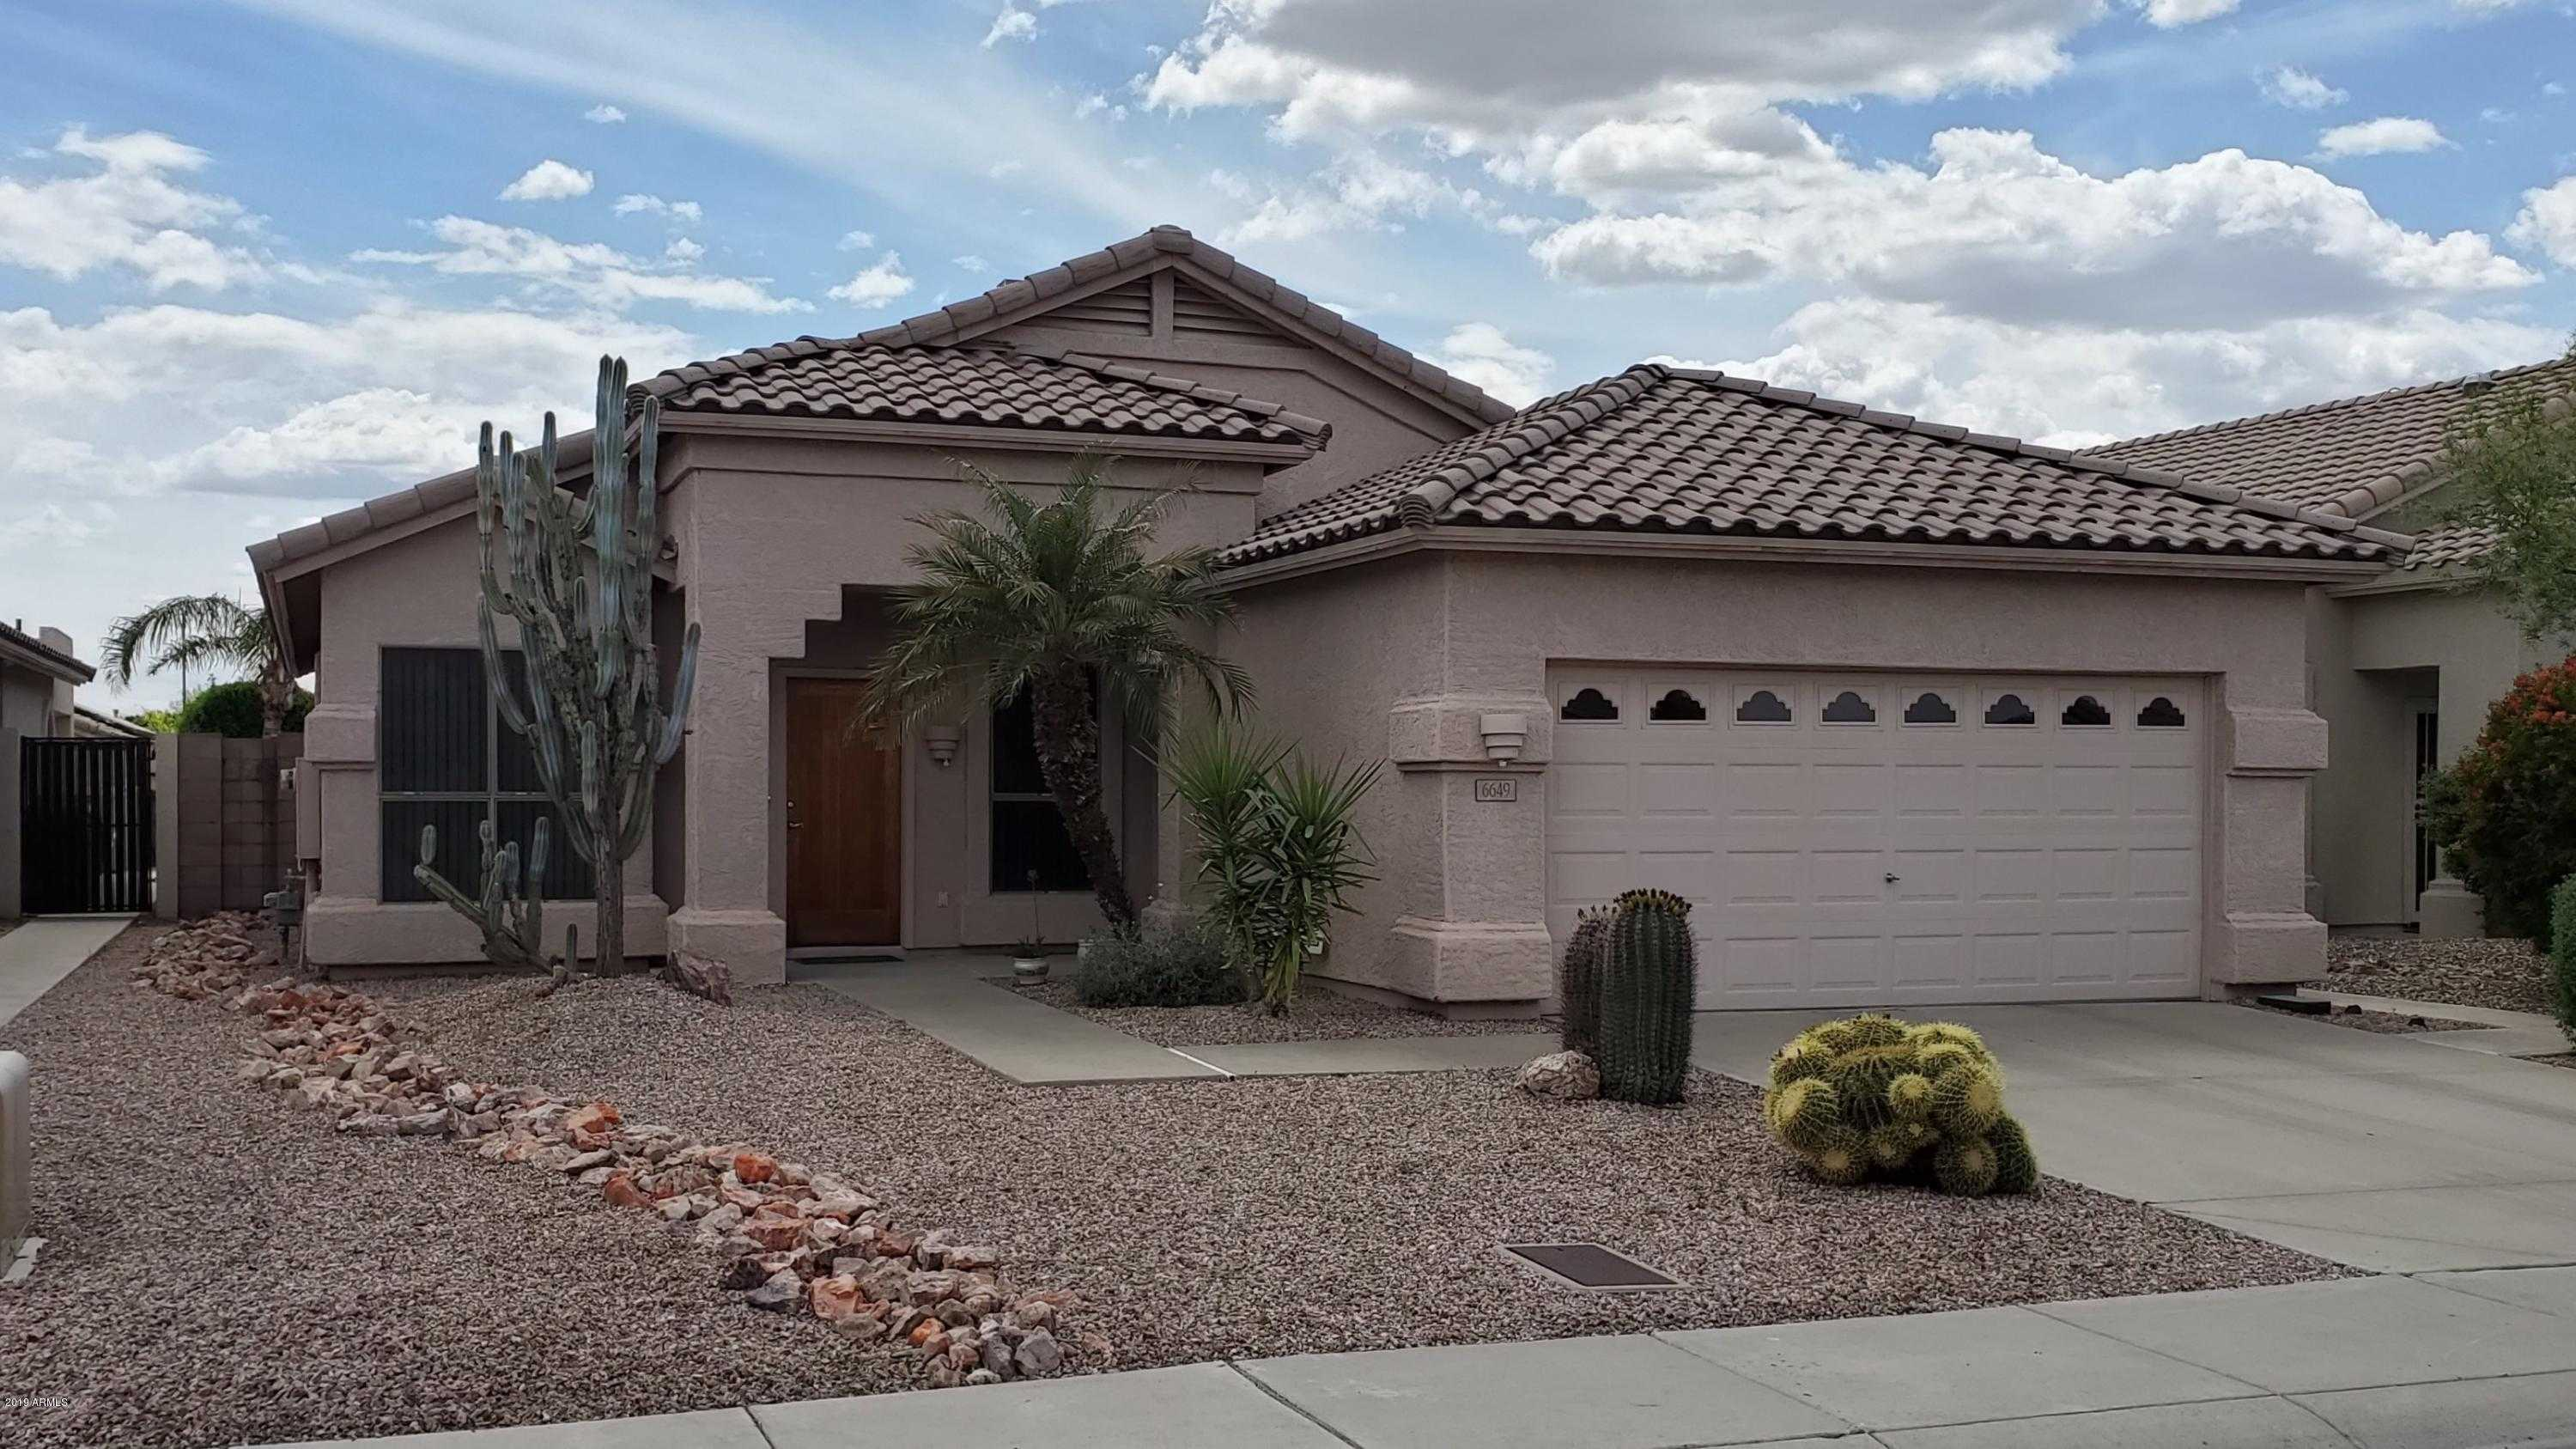 $319,500 - 4Br/2Ba - Home for Sale in Arrowhead Ranch Parcel 10, Glendale